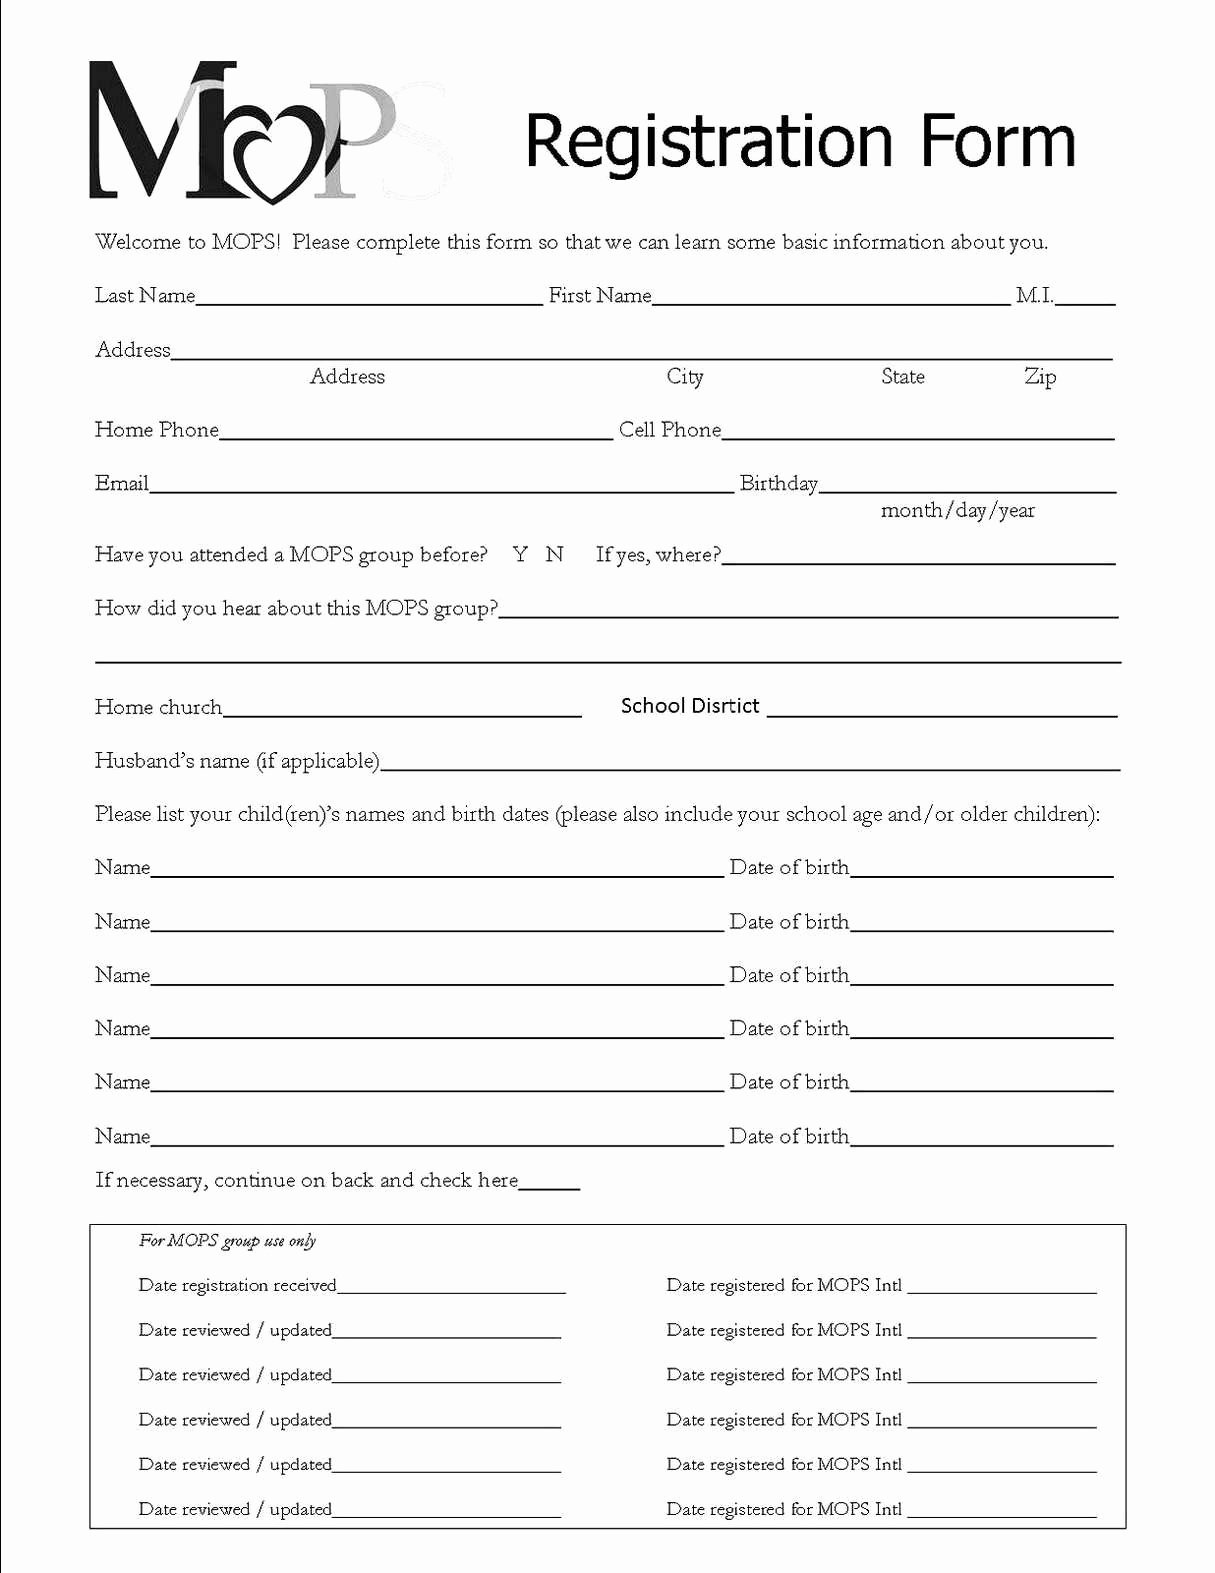 Conference Registration form Template Word Inspirational Registration forms Template Free